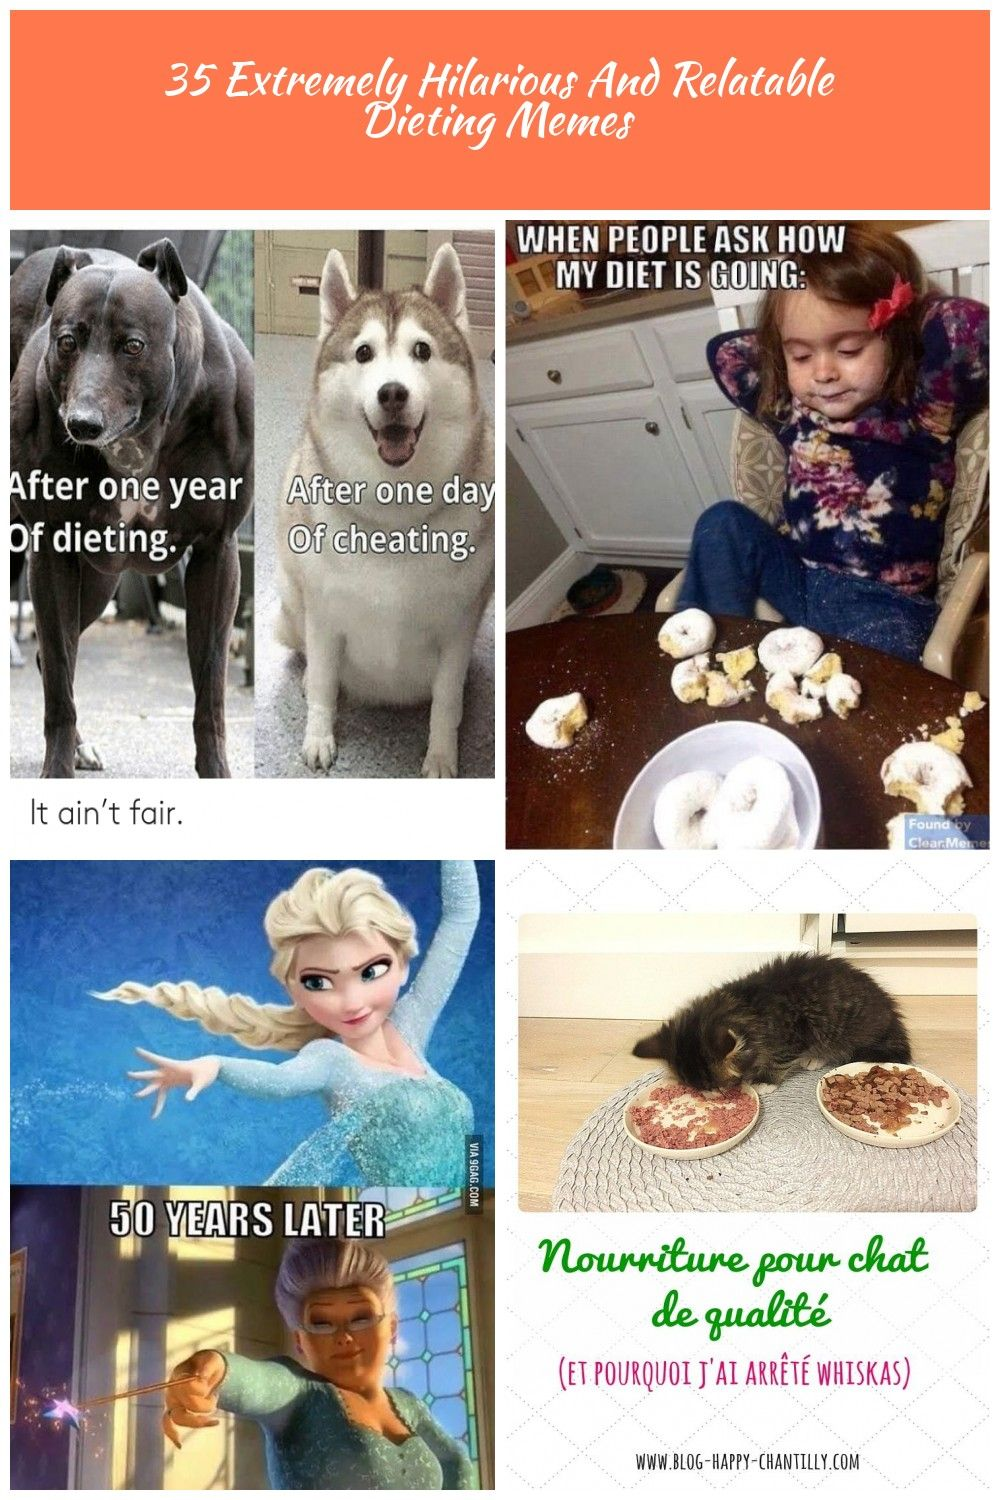 35 Extremely Hilarious And Relatable Dieting Memes Lively Pals Diet Meme 35 Extremely Hilarious And Relatable Dieting Memes Diet Meme Hilarious Memes